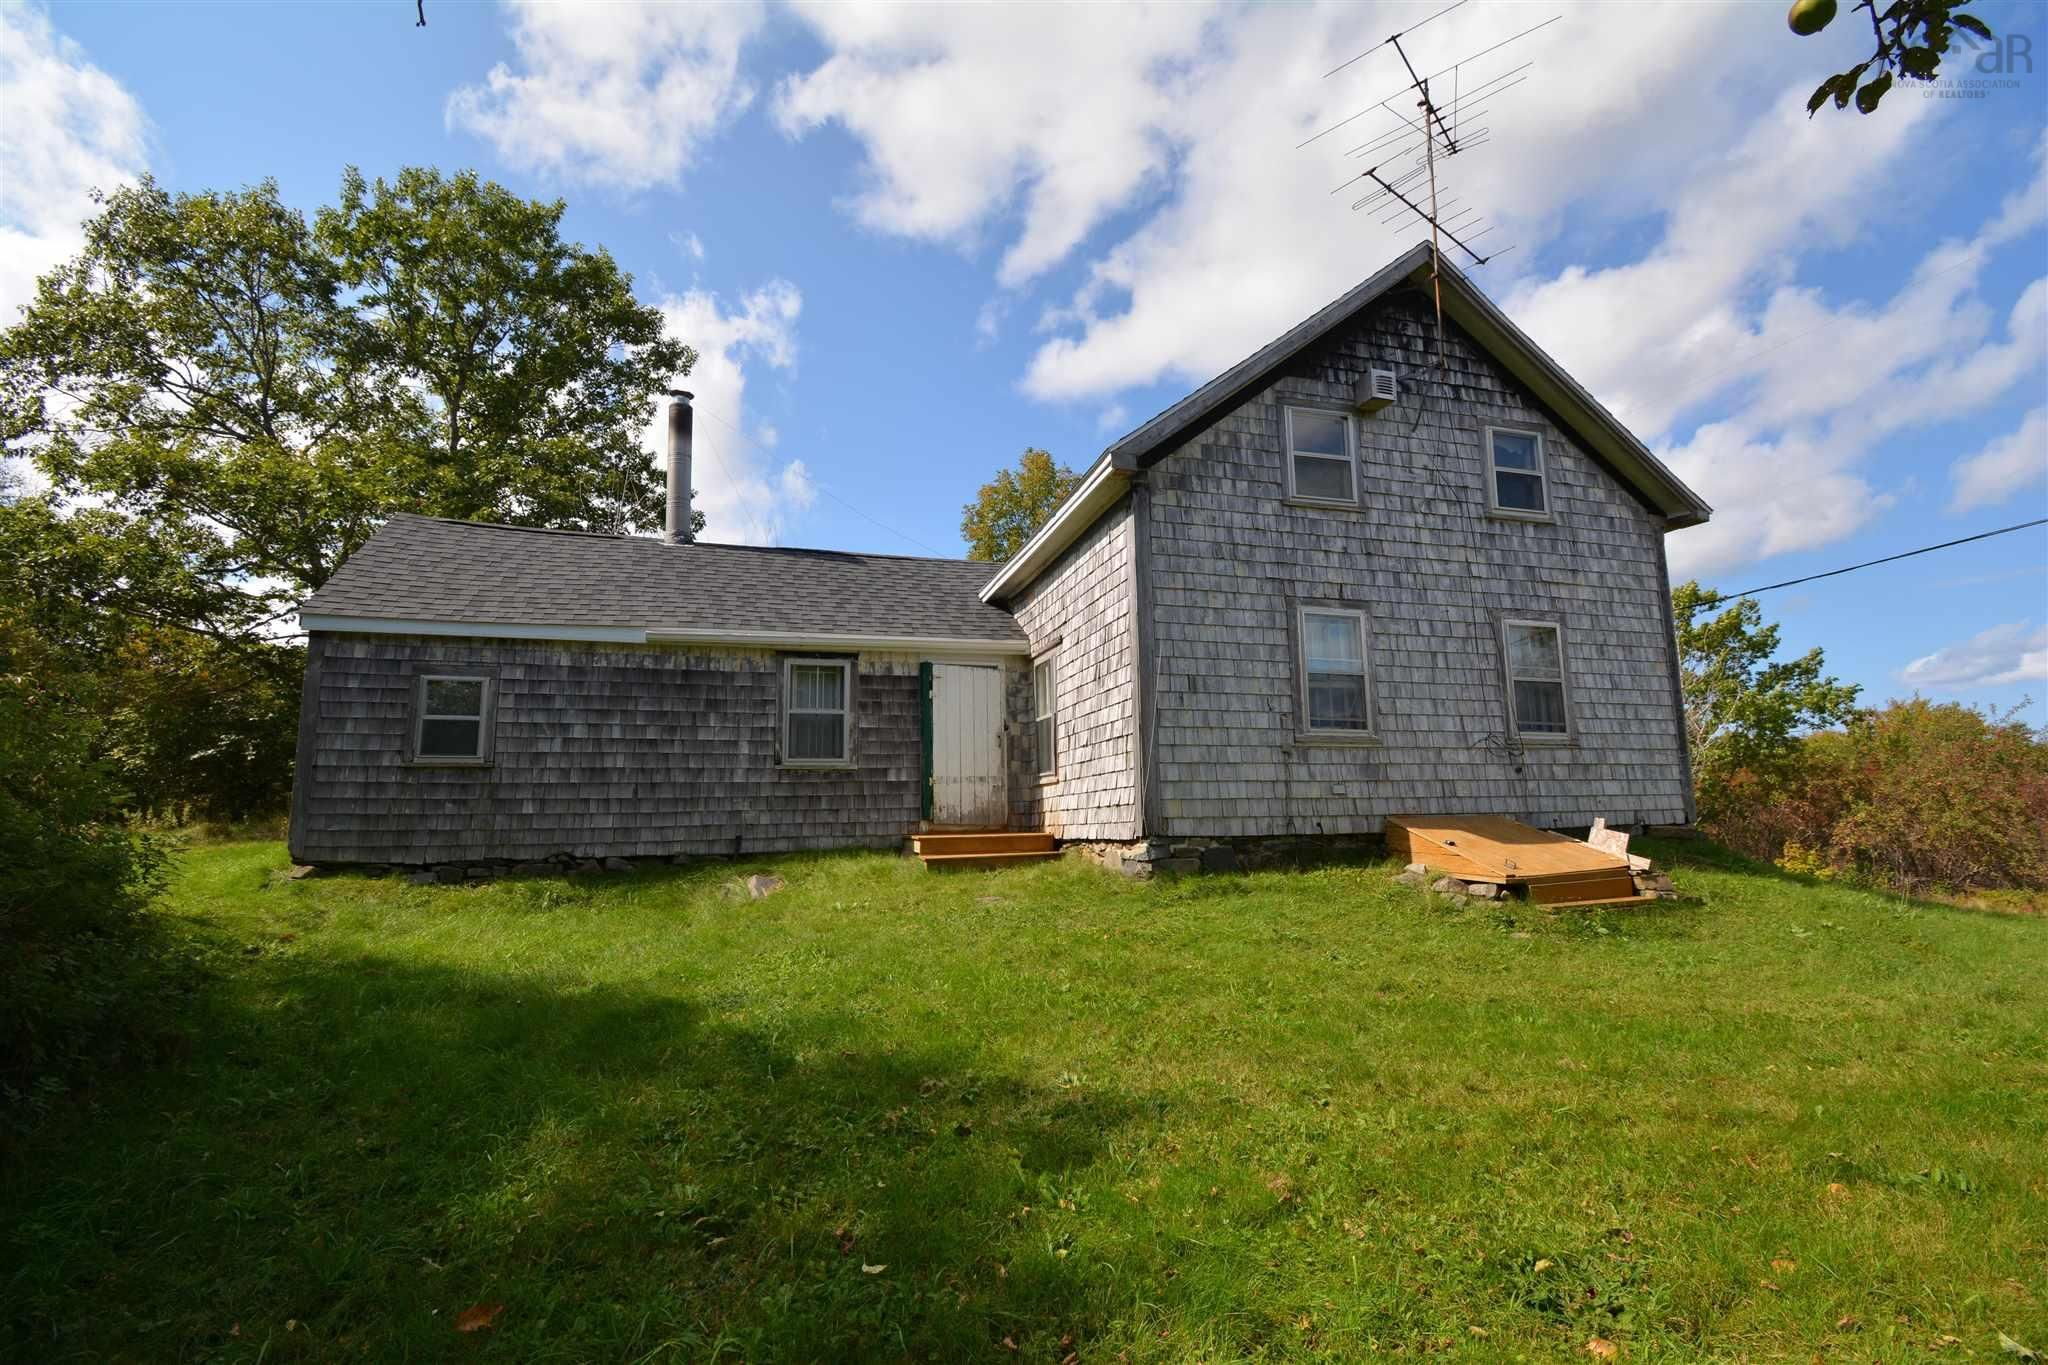 Main Photo: 1074 WEYMOUTH FALLS Road in Weymouth Falls: 401-Digby County Residential for sale (Annapolis Valley)  : MLS®# 202124892